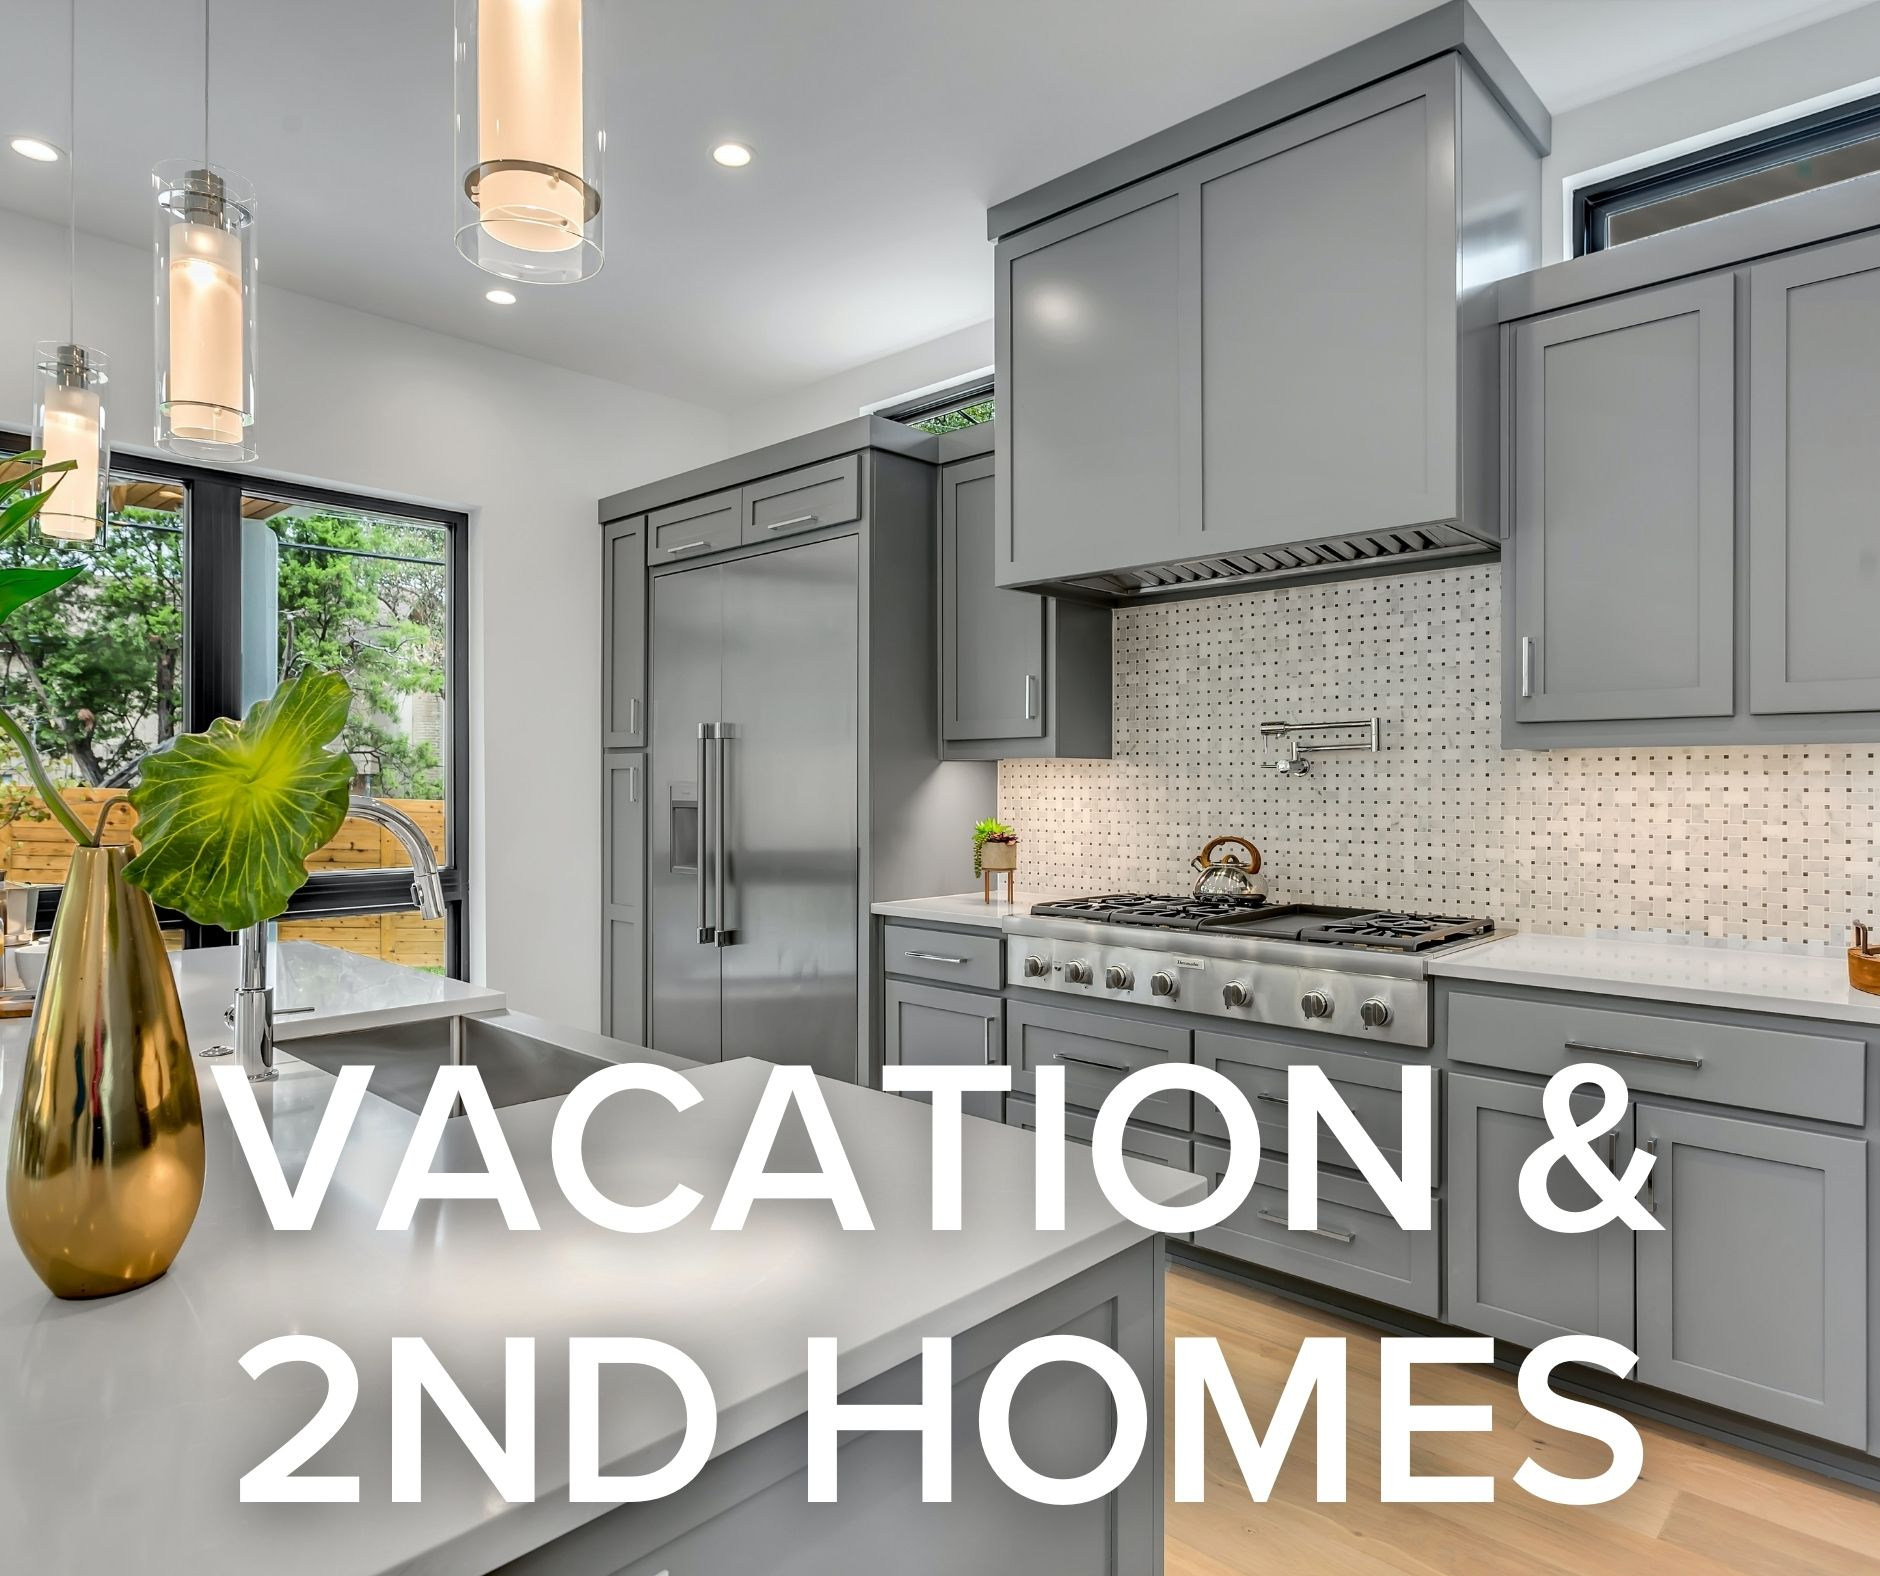 Vacation and 2nd homes, Holly Reynolds, Windermere Real Estate, Whidbey Island, Washington